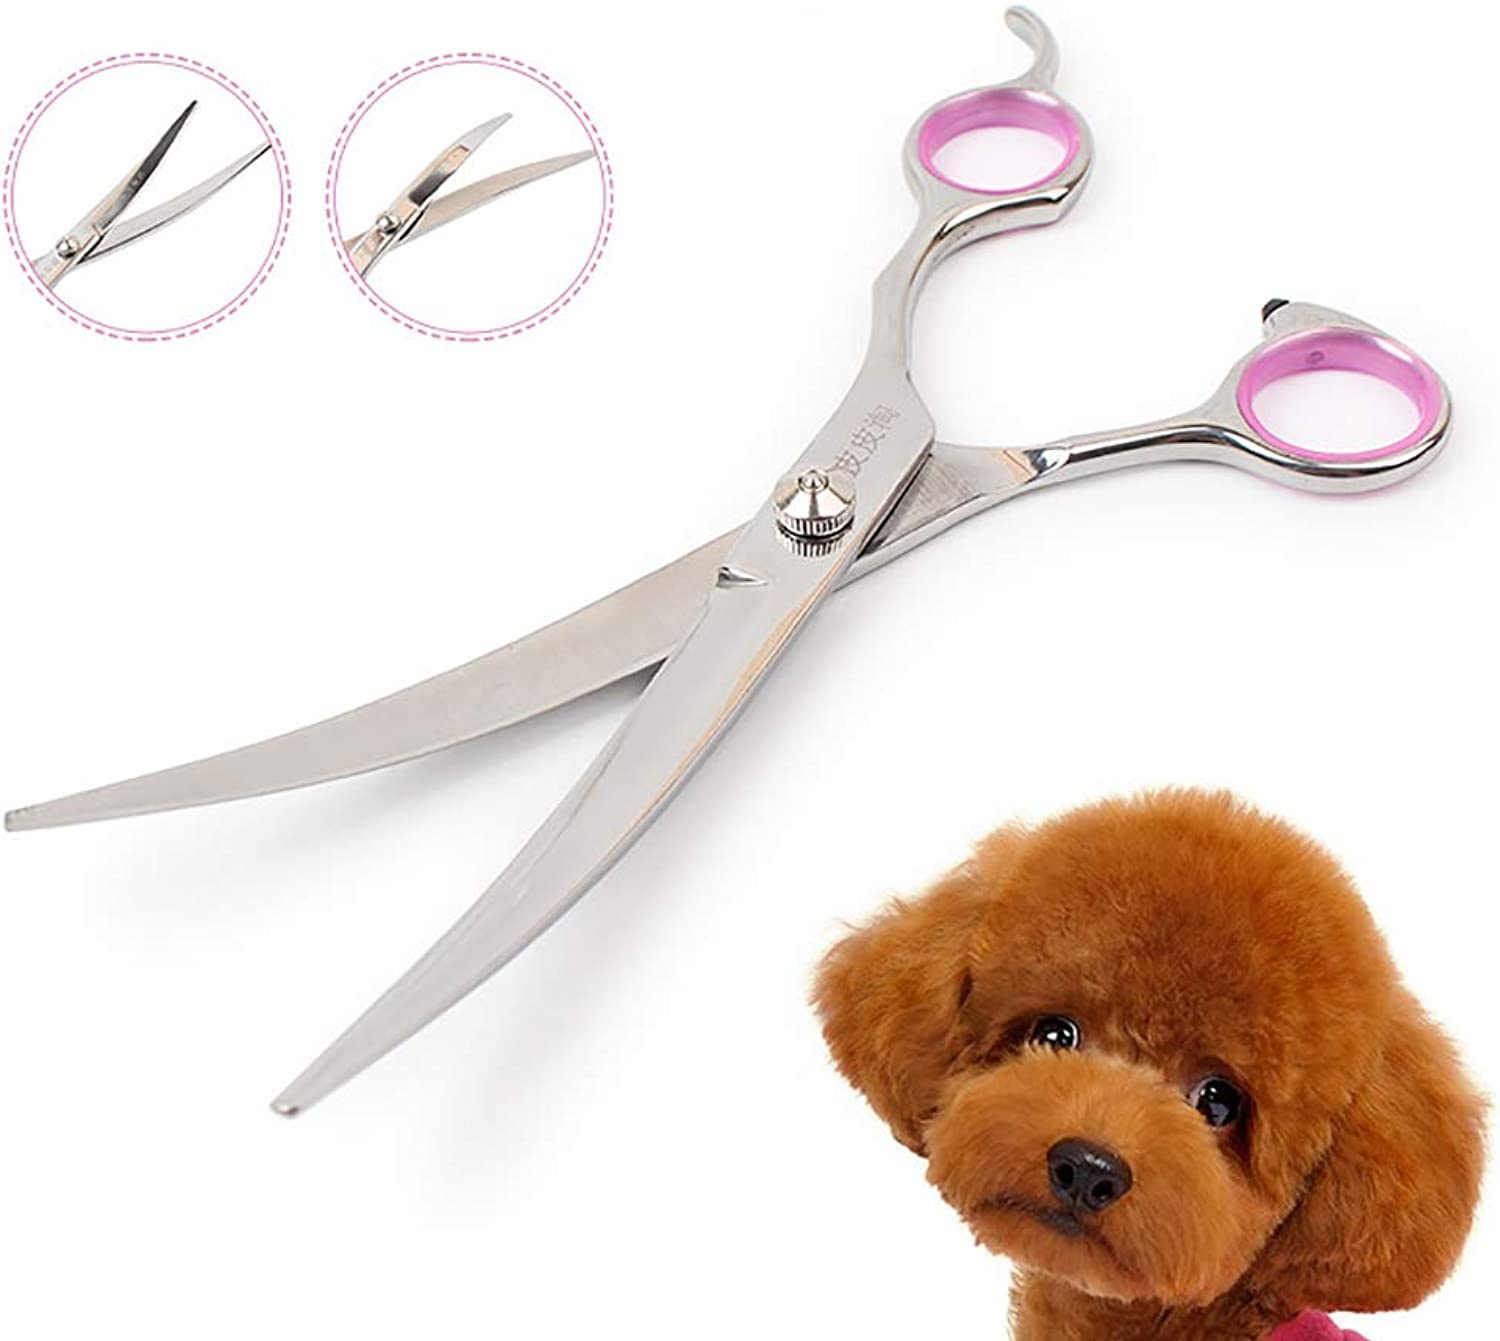 2PCS Professional Dog Grooming Scissors Stainless Steel Personality Design Cat Grooming Scissors Pet Grooming kit